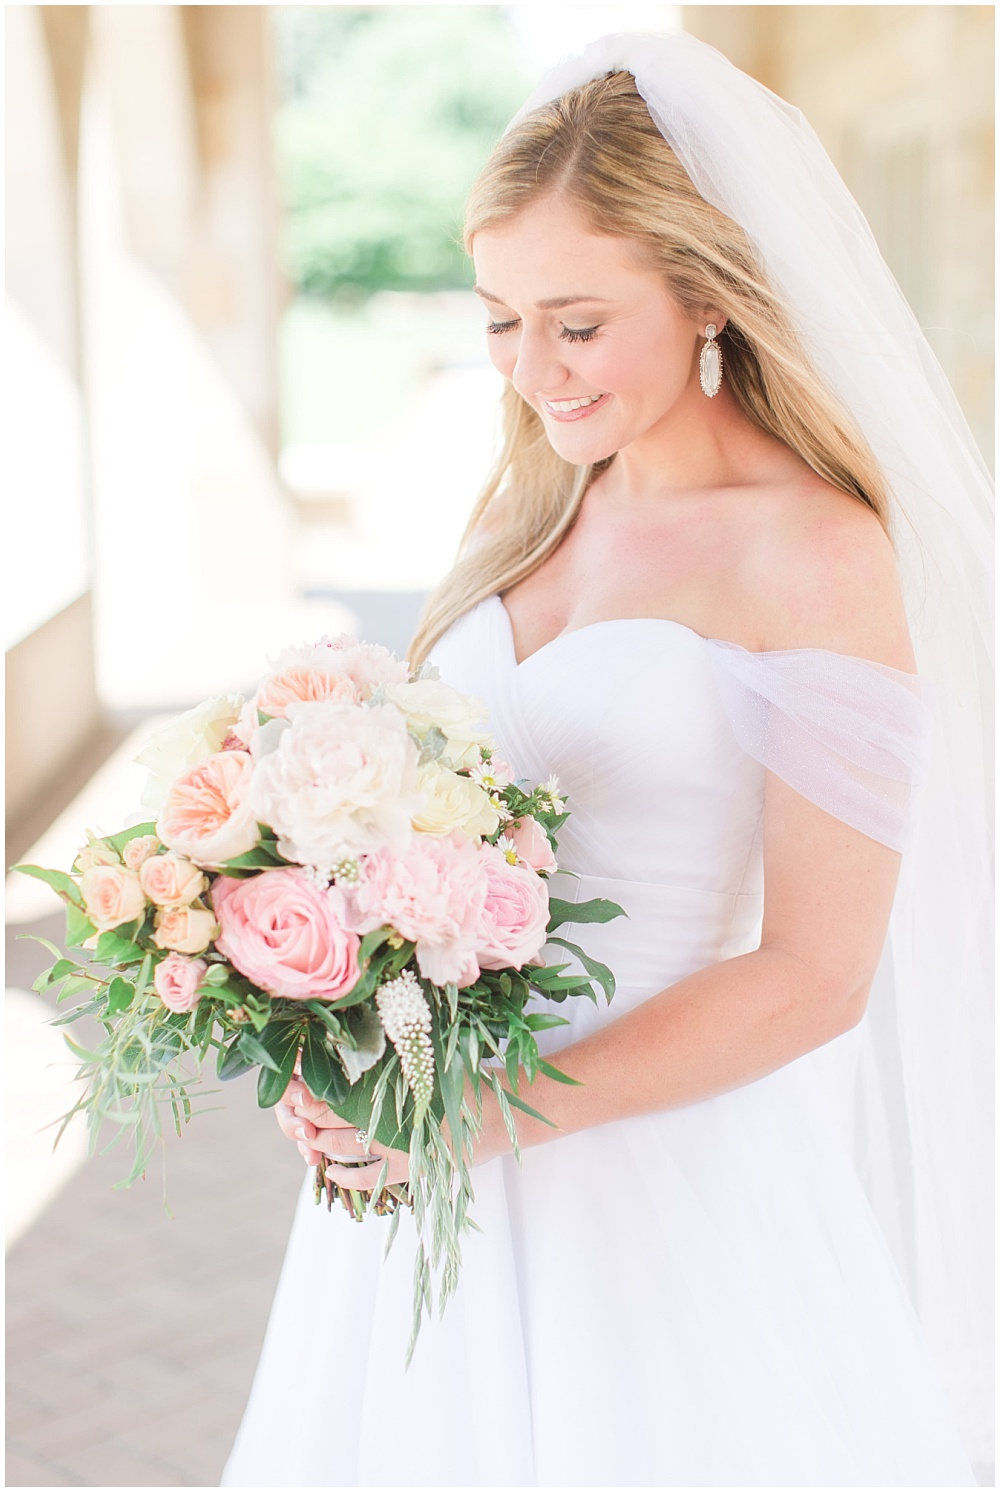 Classic white off-the-shoulder bridal gown with blush and pink bridal bouquet   Sami Renee Photography + Jessica Dum Wedding Coordination